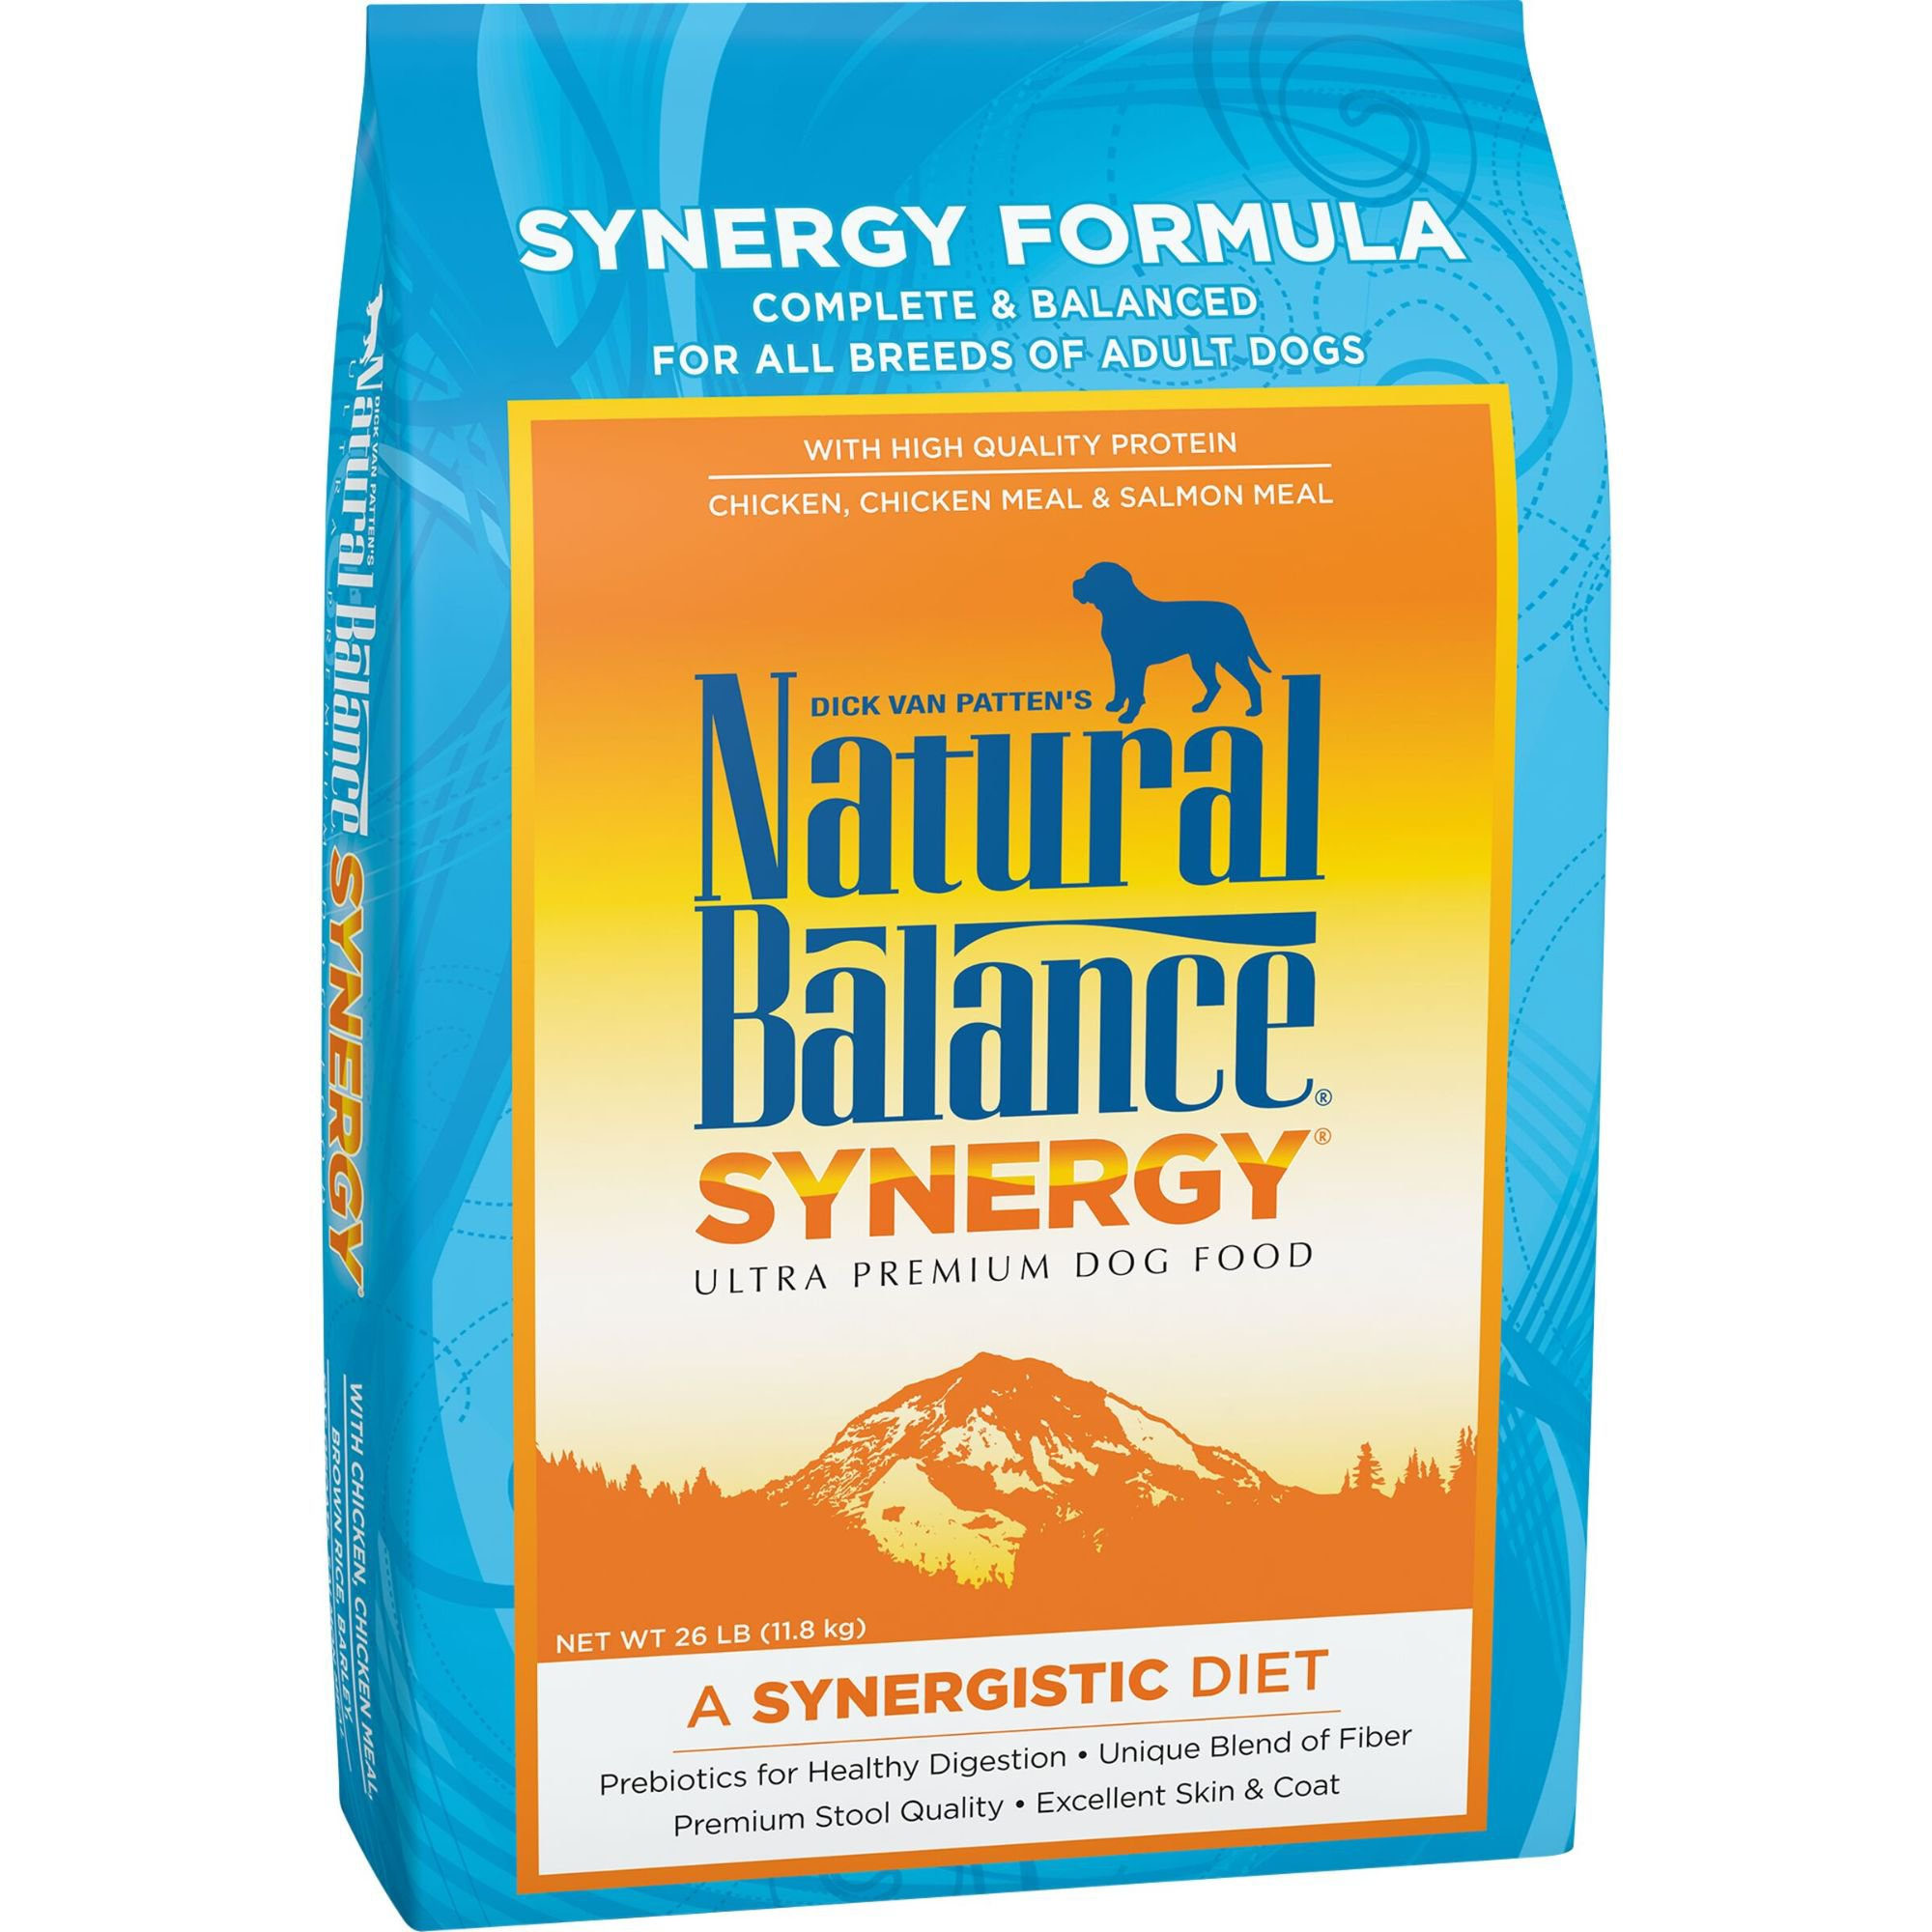 Natural Balance Synergy Ultra Premium Dry Dog Food 26 lbs.